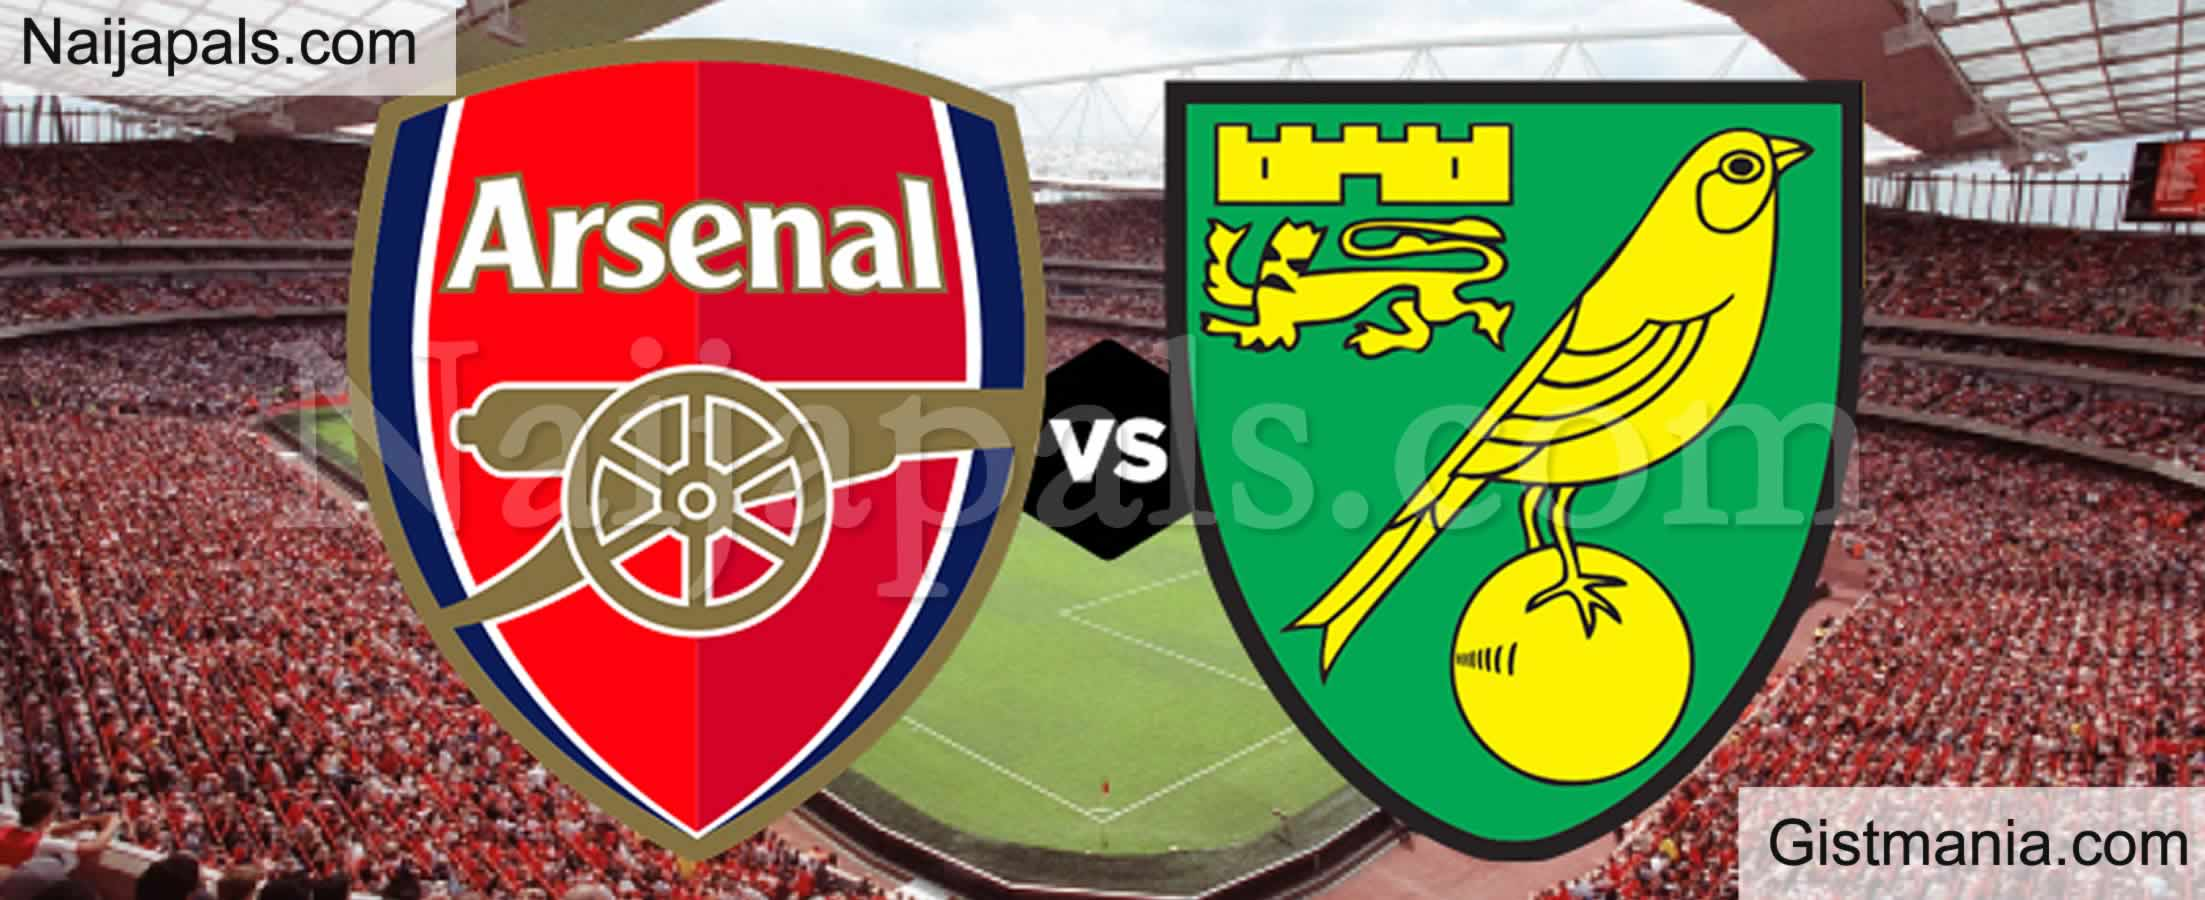 arsenal vs norwich city - photo #41